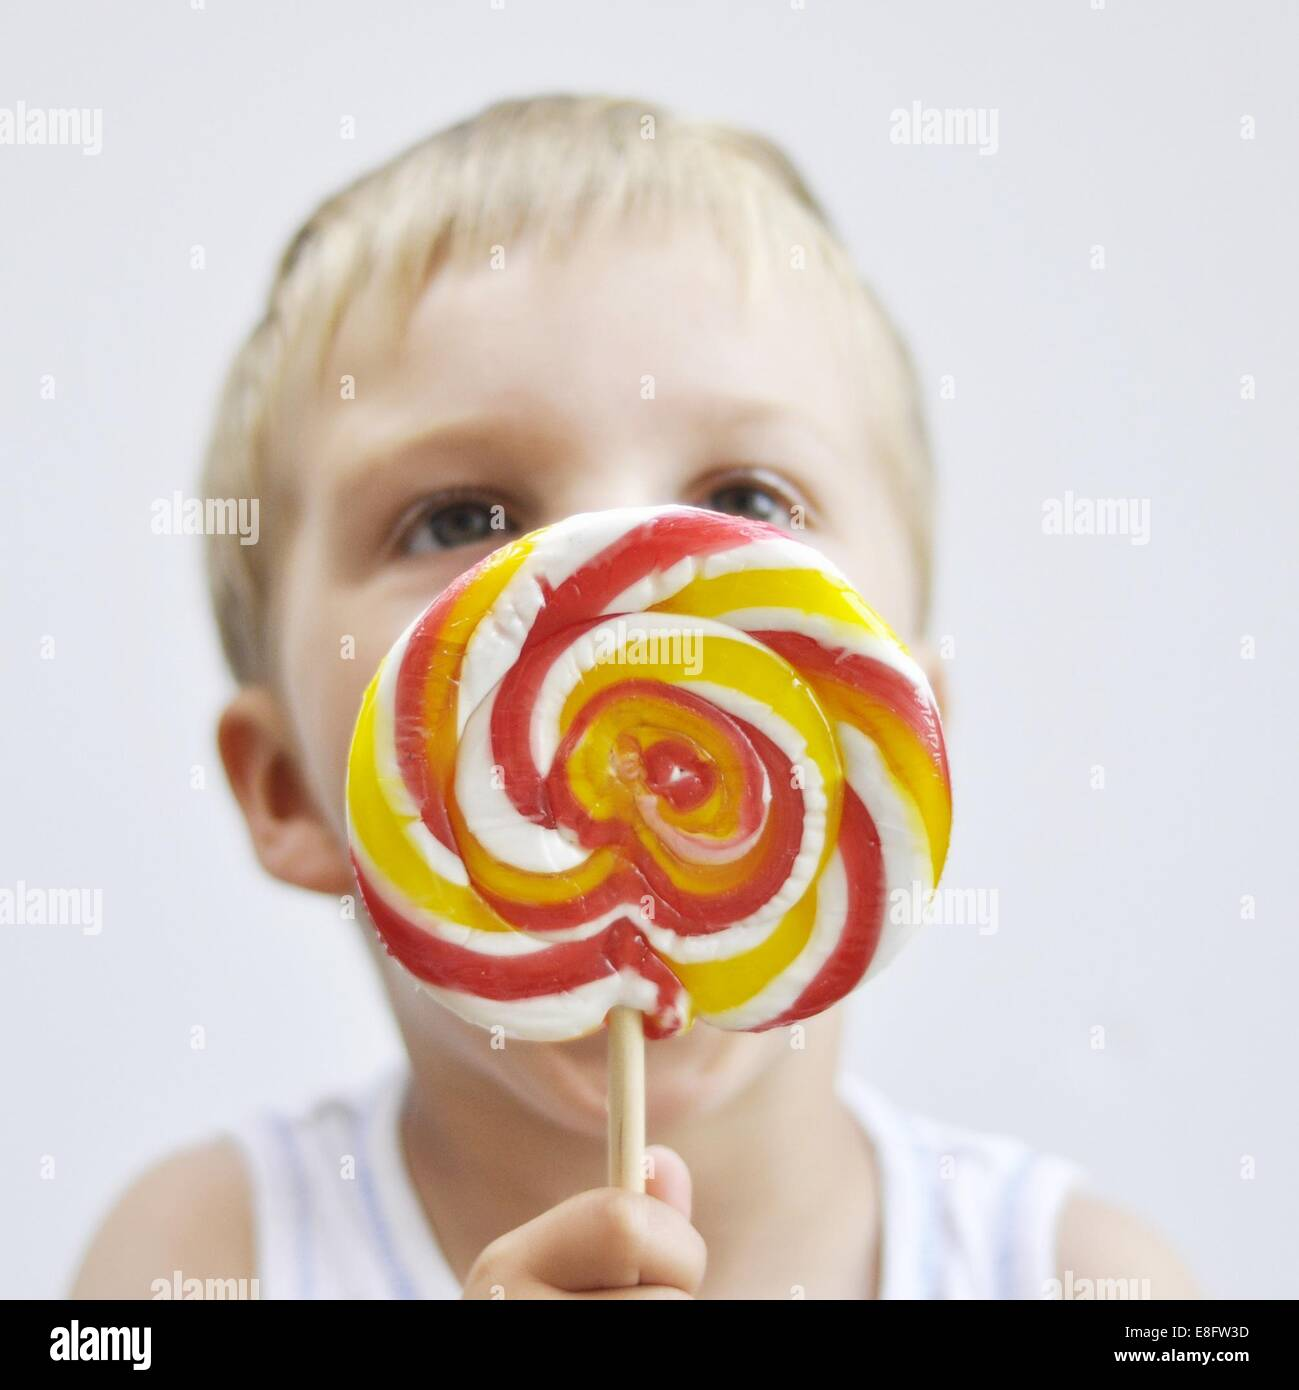 Boy licking a giant lollipop - Stock Image